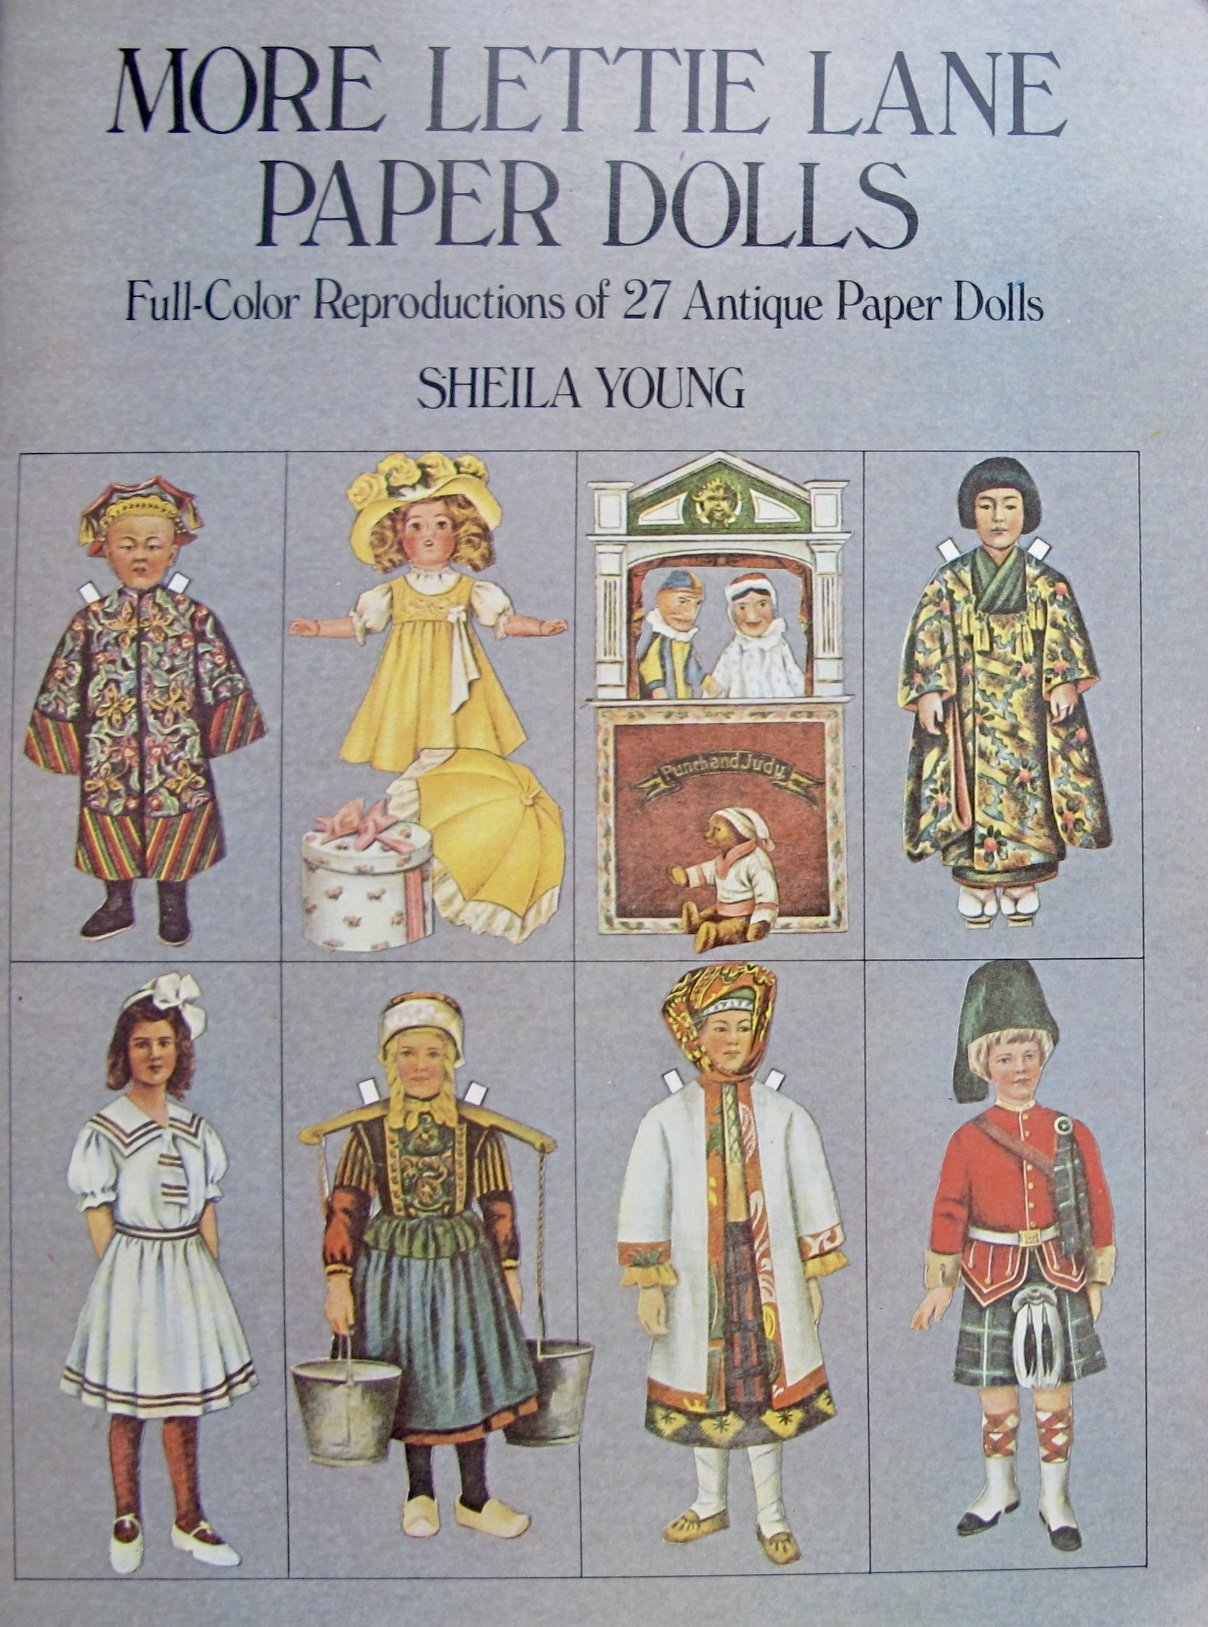 Around The World Party Ethnic More Lettie Lane Paper Dolls Book (Uncut) w Color Reproductions of 27 Antique Paper Dolls 1909-1911 & Costumes (1981